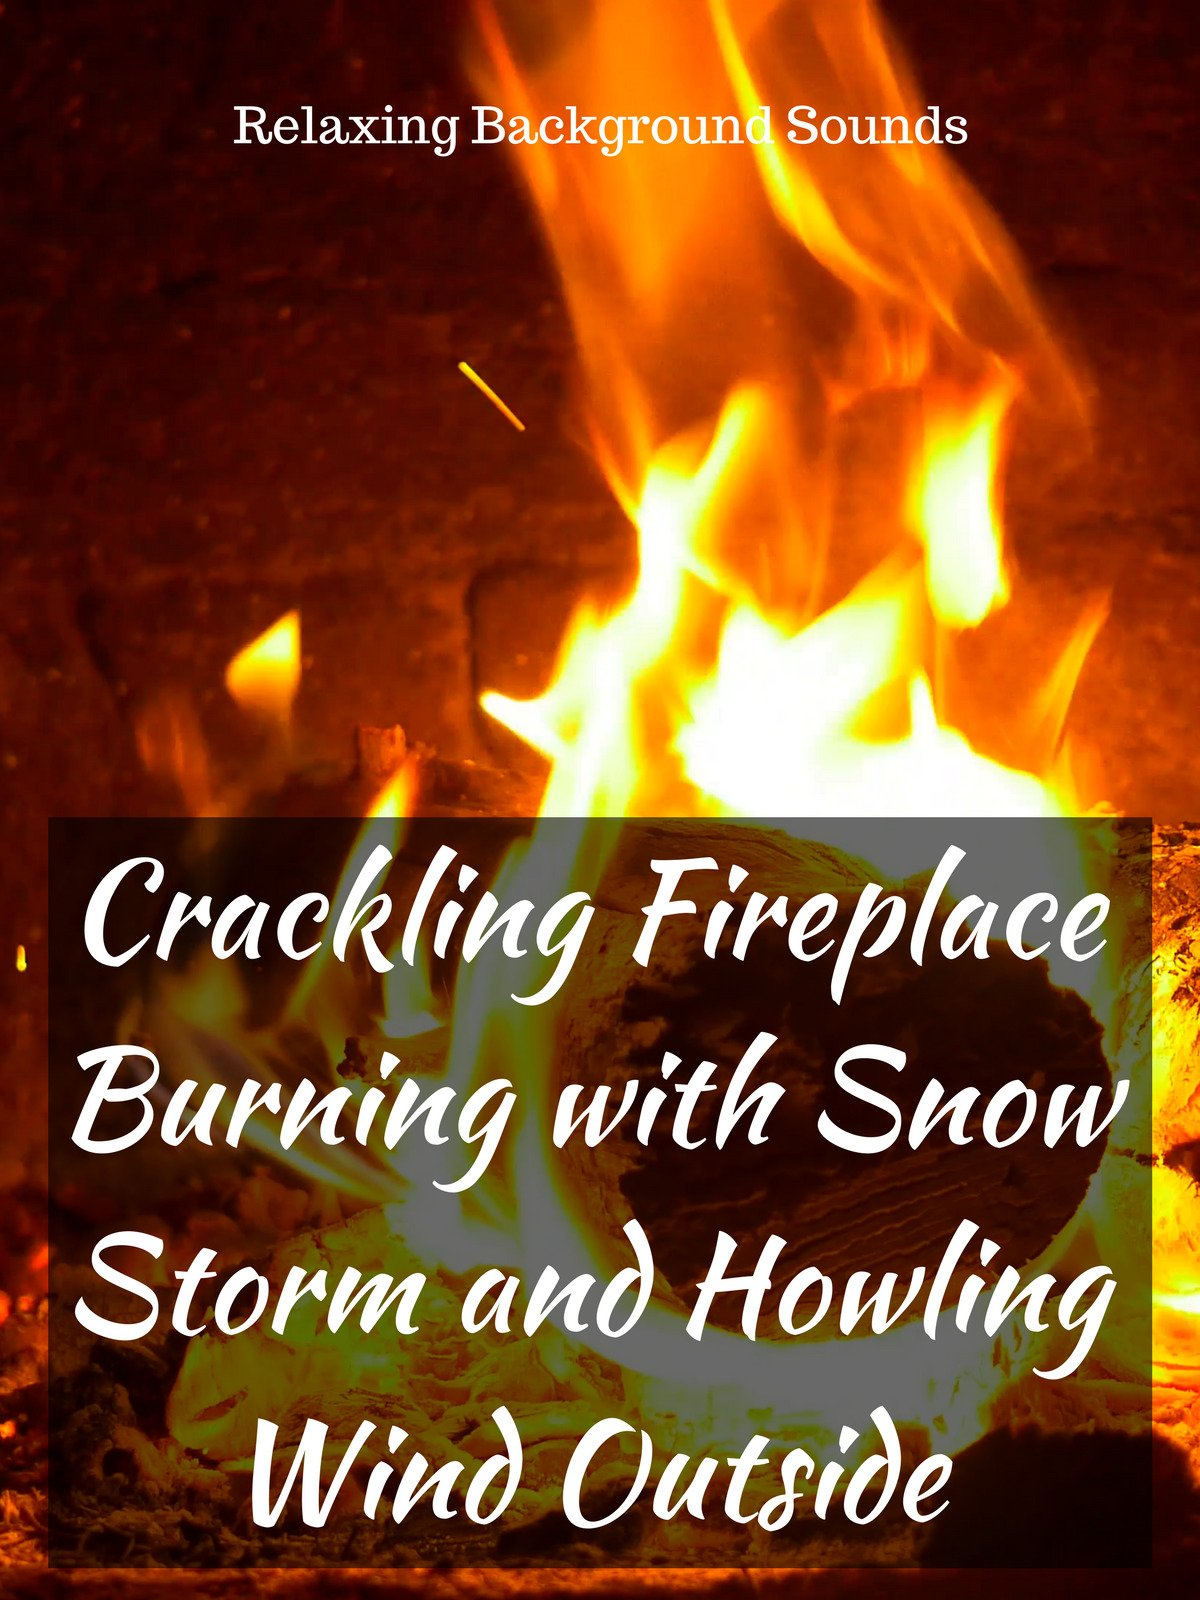 Crackling Fireplace Burning with Snow Storm and Howling Wind Outside